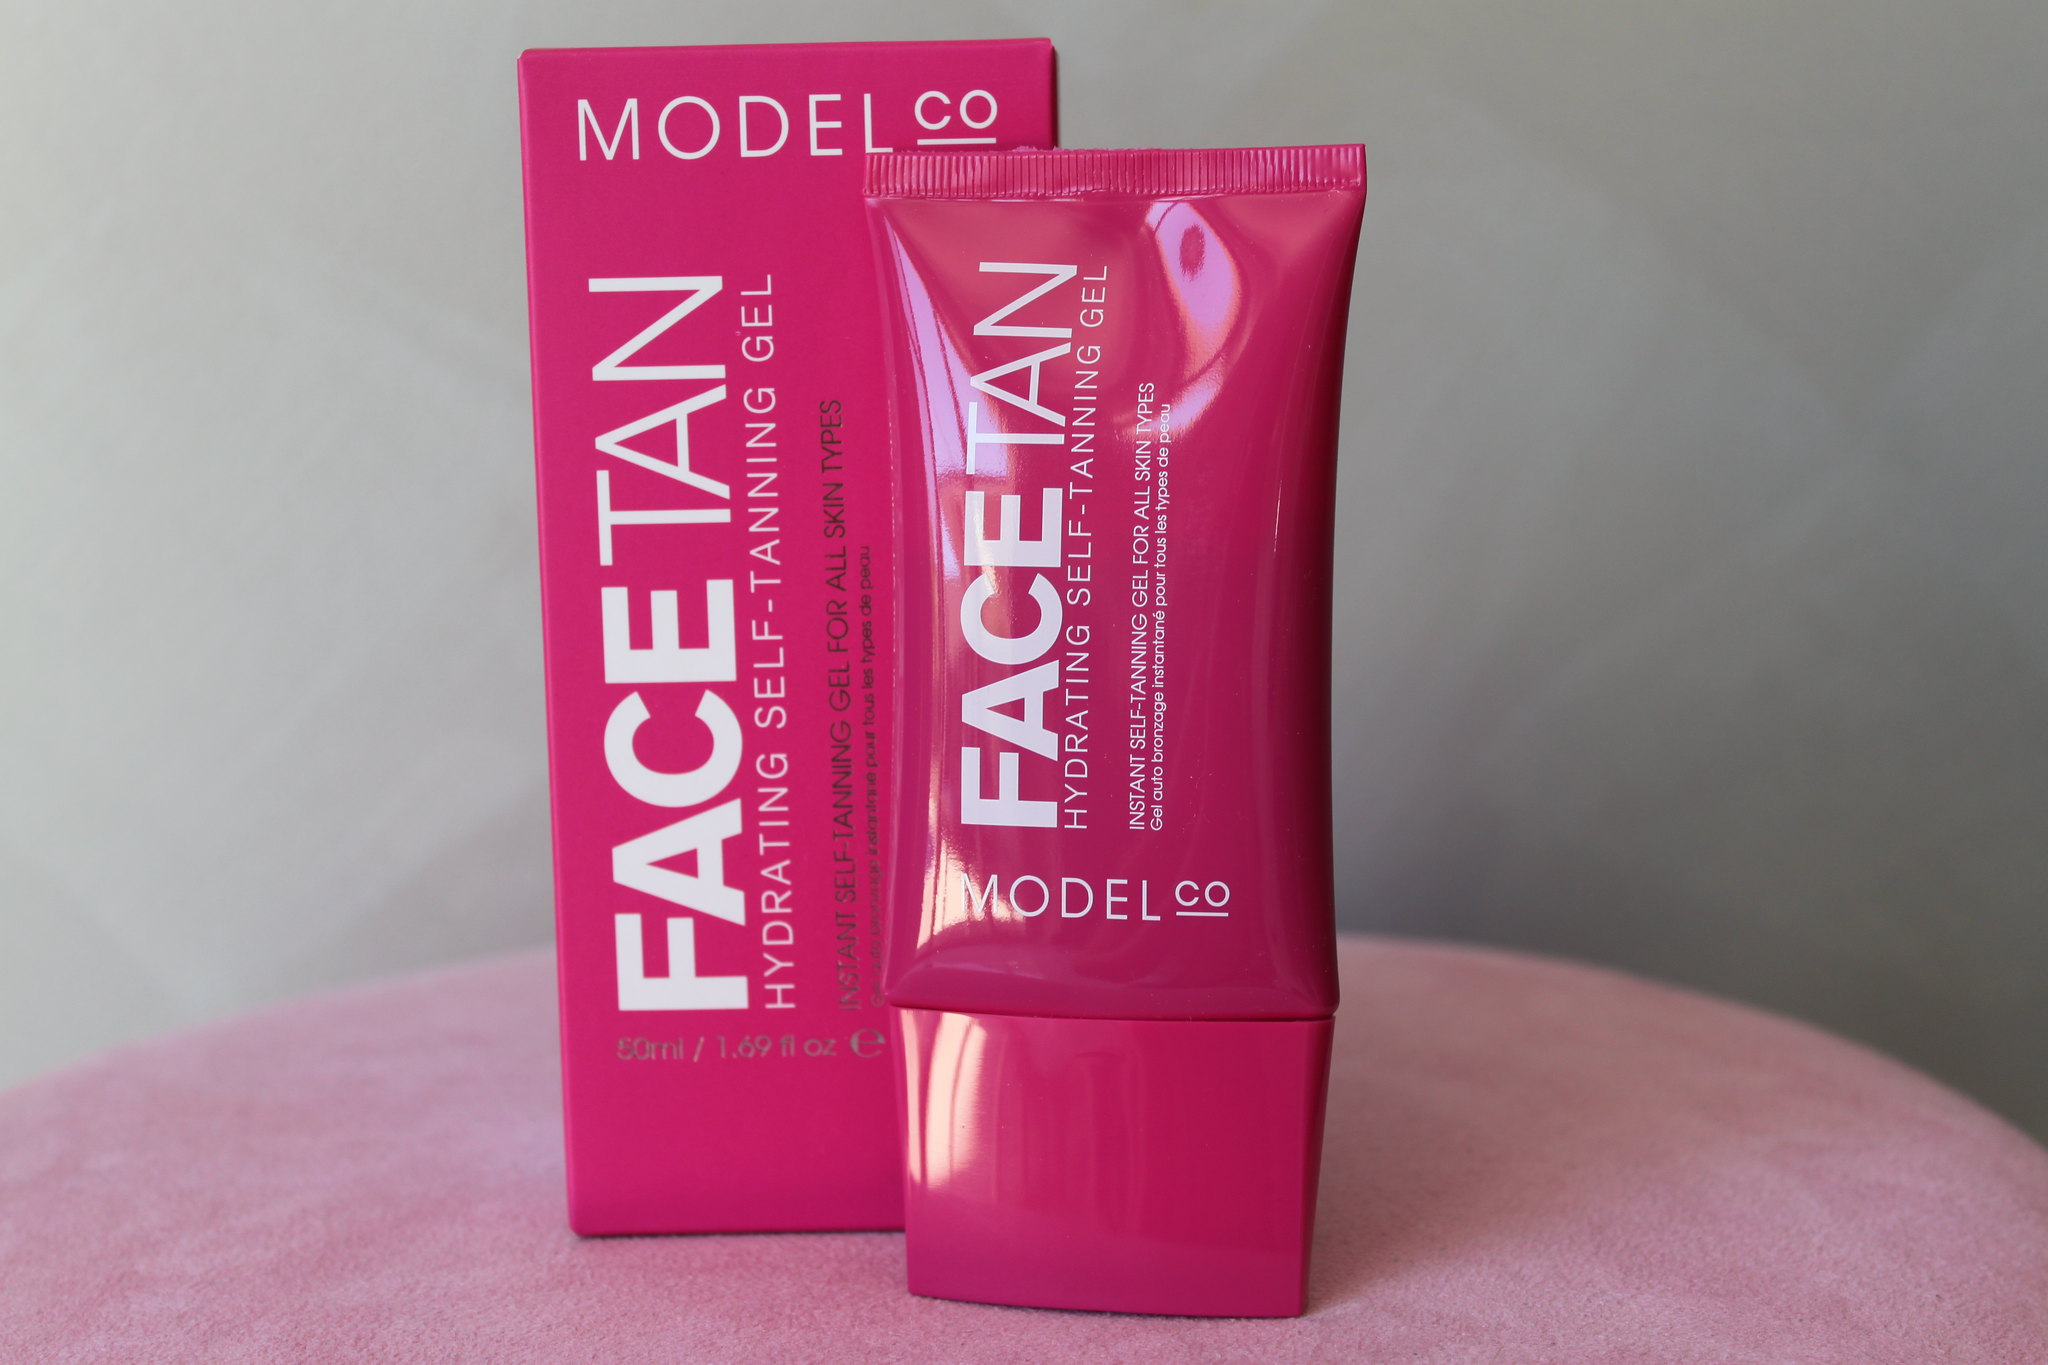 Modelco gradual Face Tan hydrating self tanning gel australian beauty review ausbeautyreview blog blogger aussie natural glow summer beautiful sexy skin sensitive priceline model co